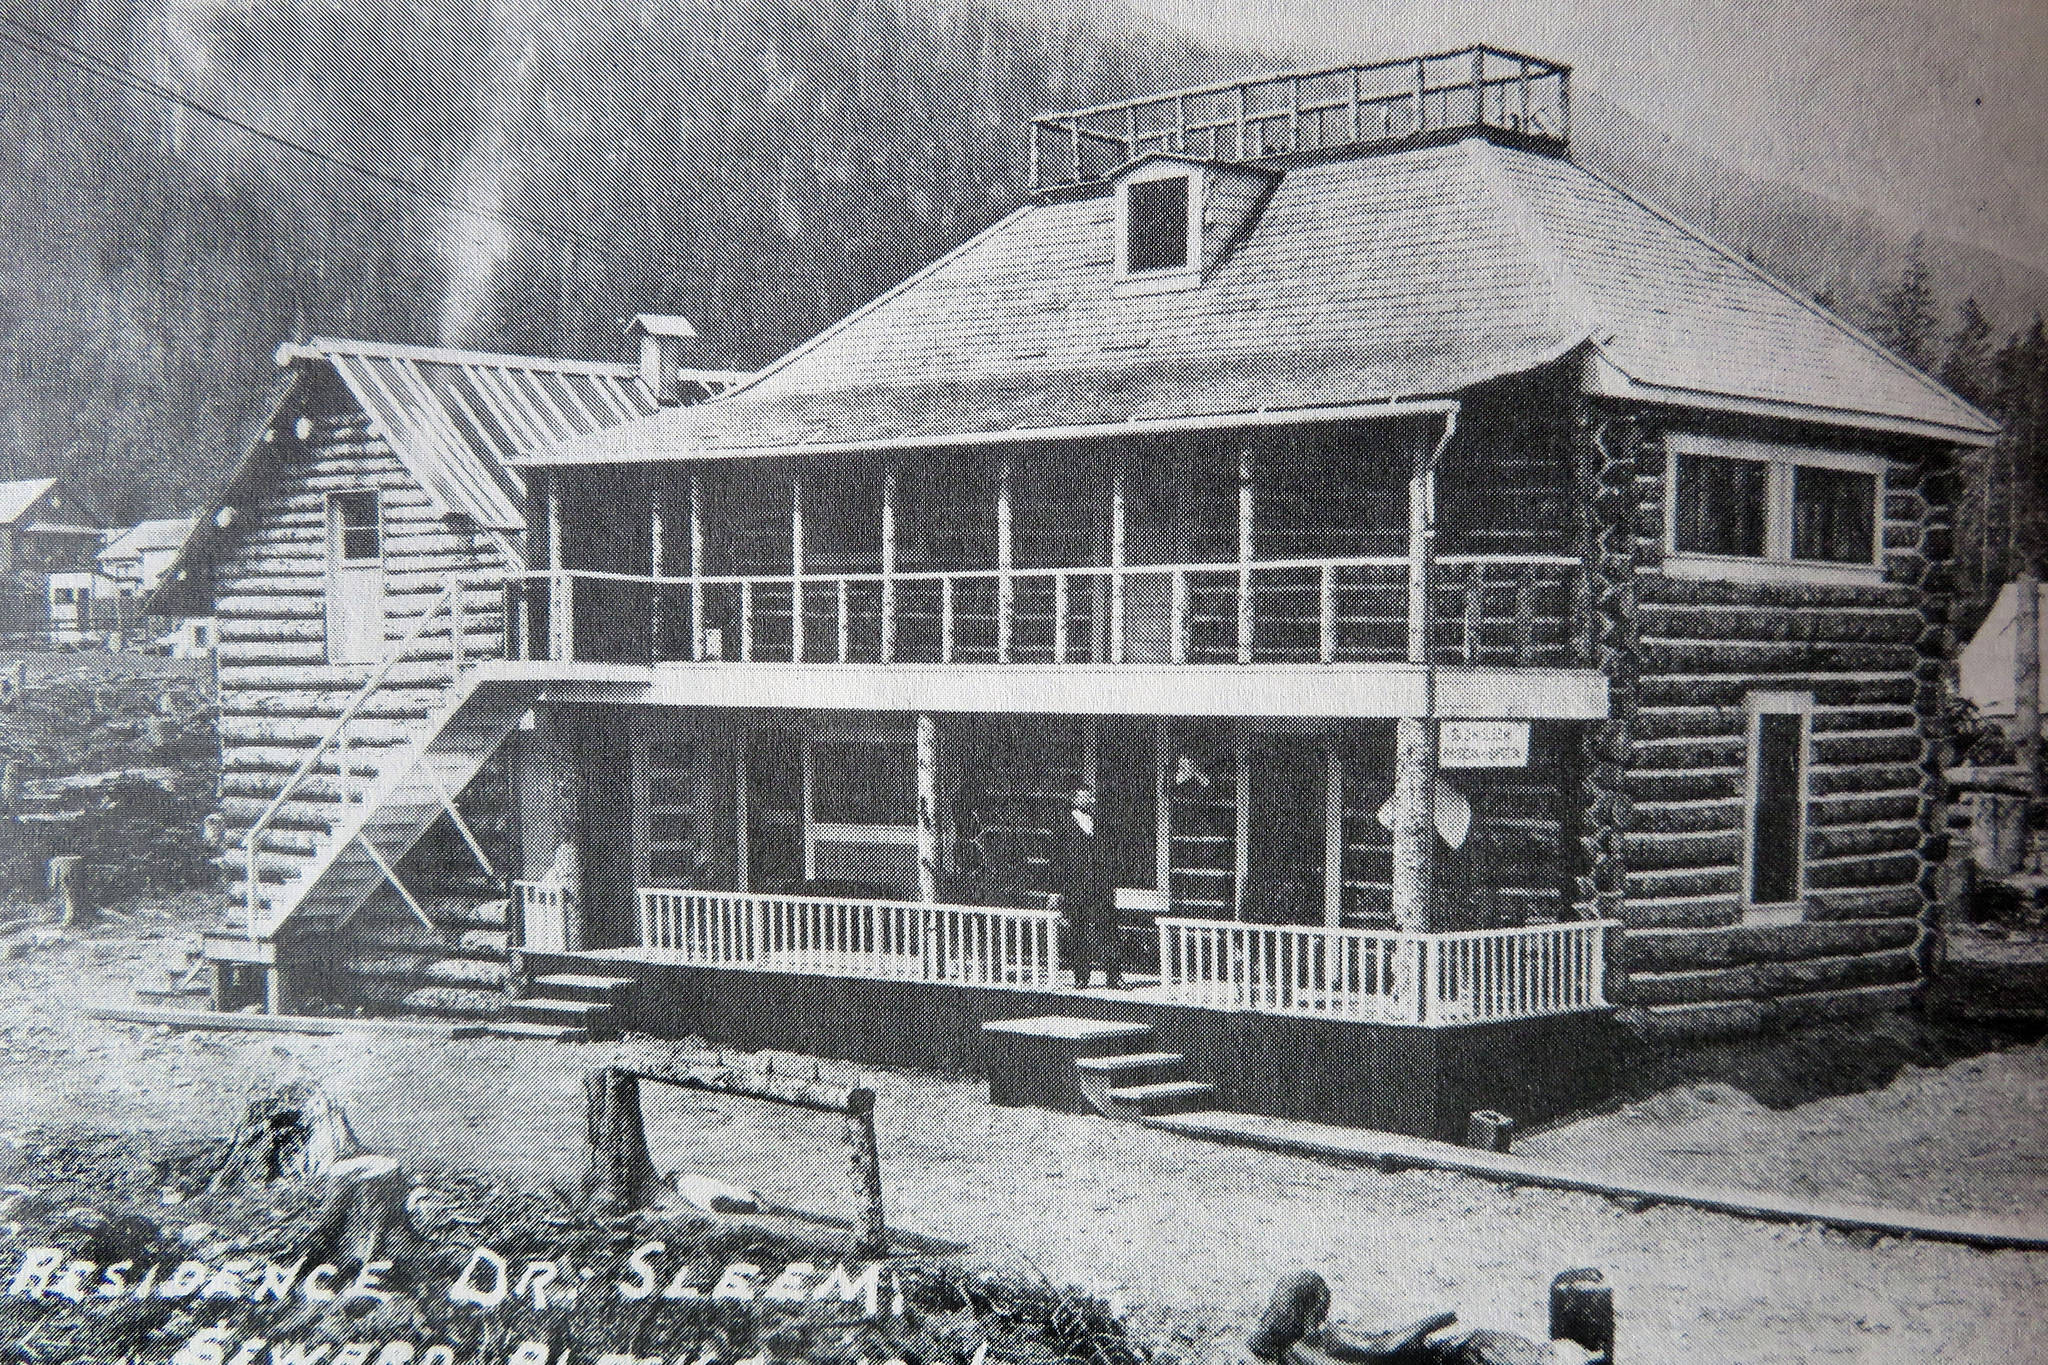 Anchorage Museum of History and Art                                Dr. David Hassan Sleem stands on the front porch of his large Seward home in 1906.